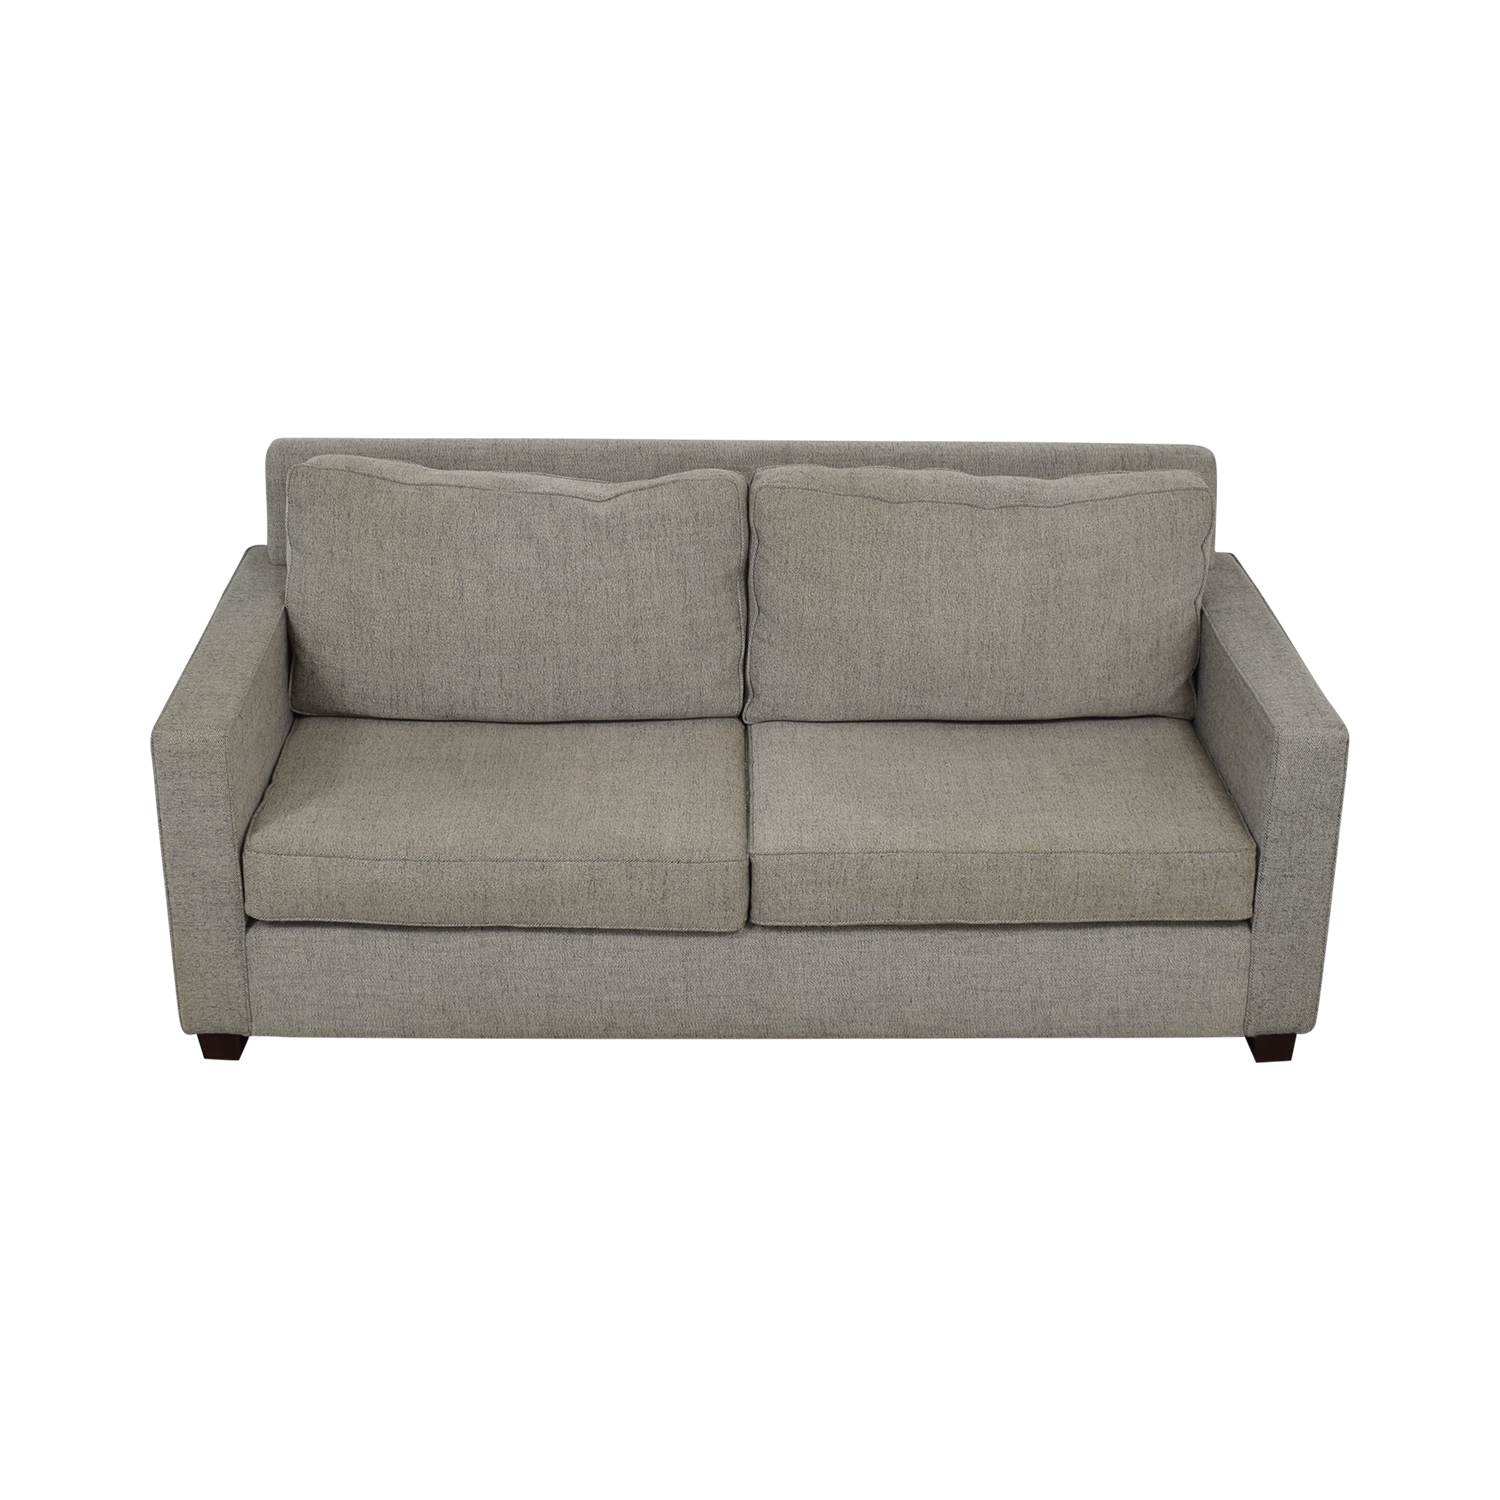 West Elm West Elm Henry Gray Two-Cushion Sofa on sale